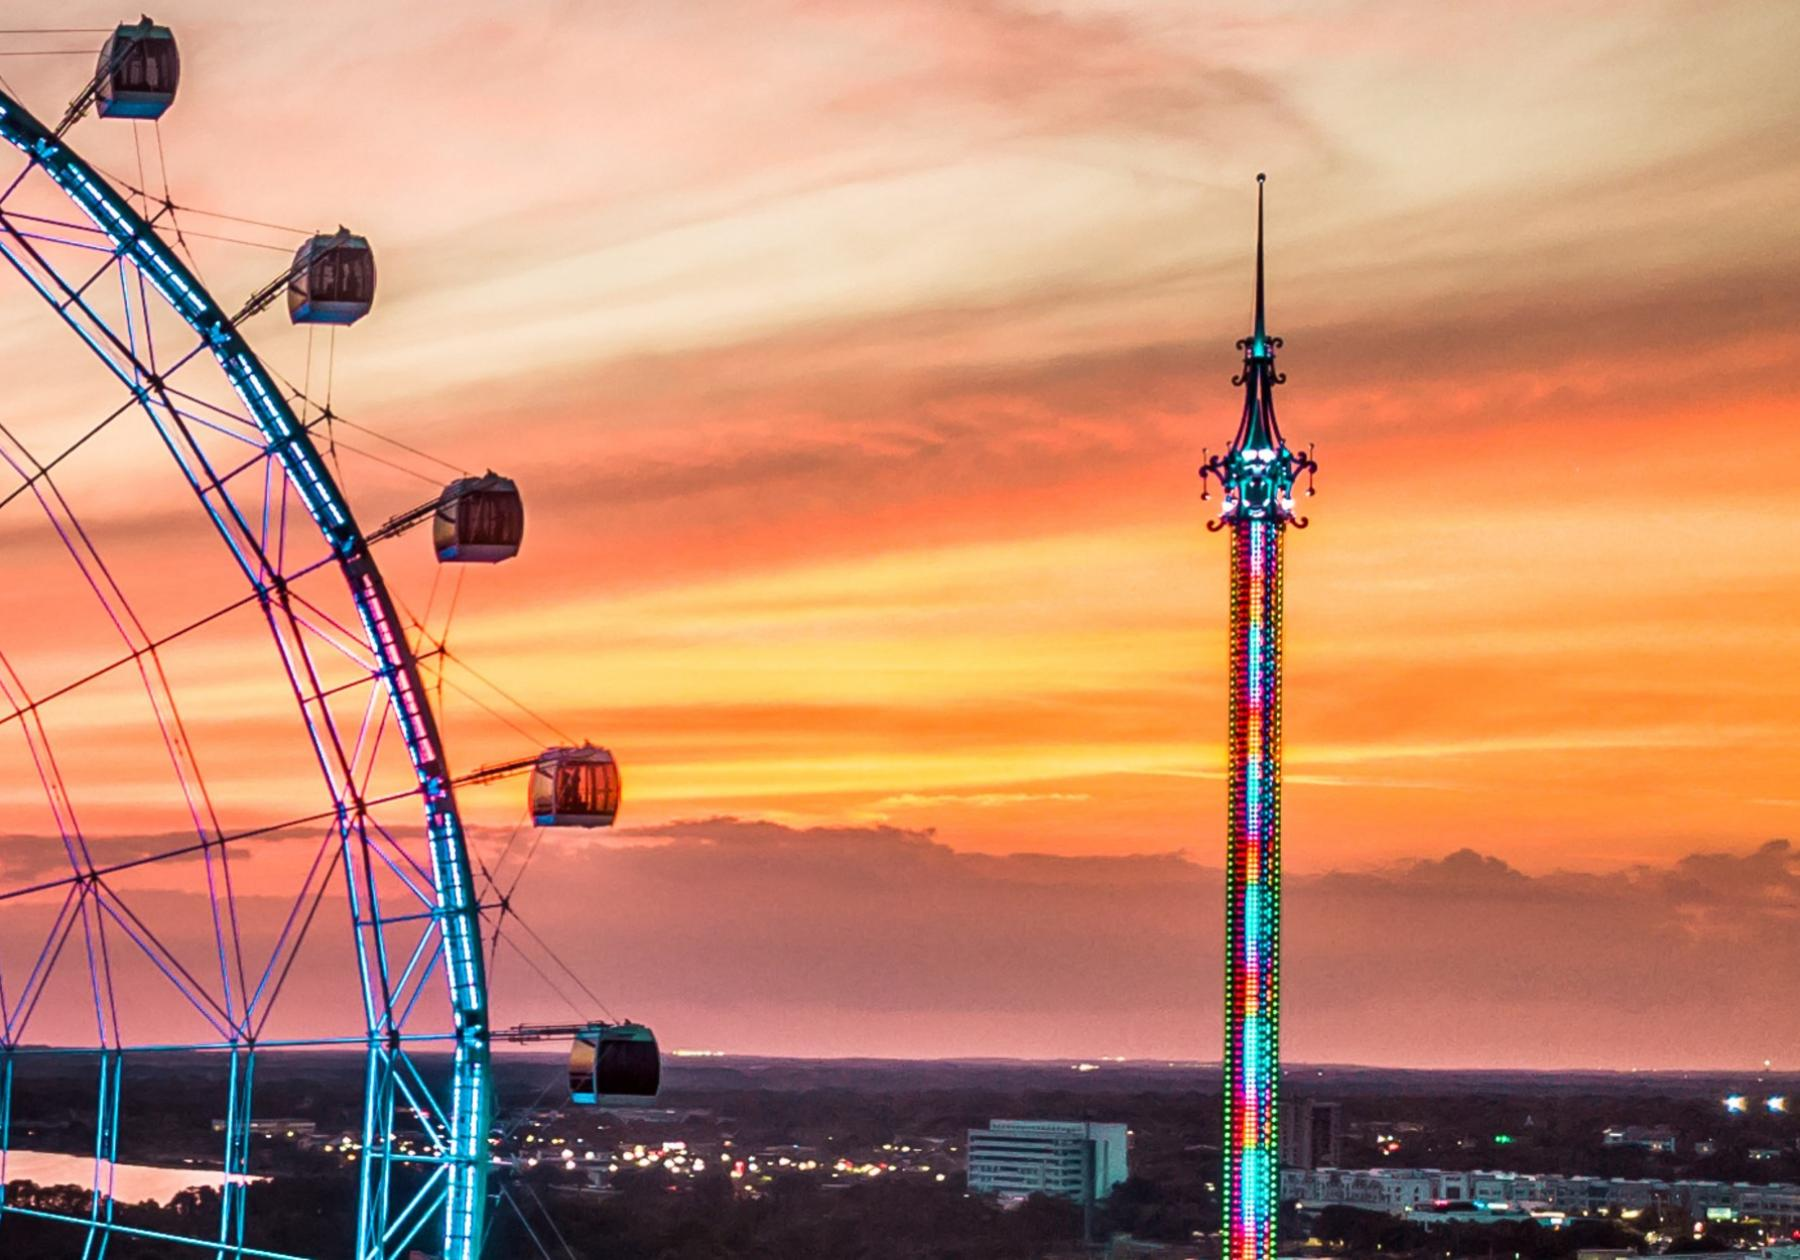 Shot of The Wheel and the Orlando StarFlyer